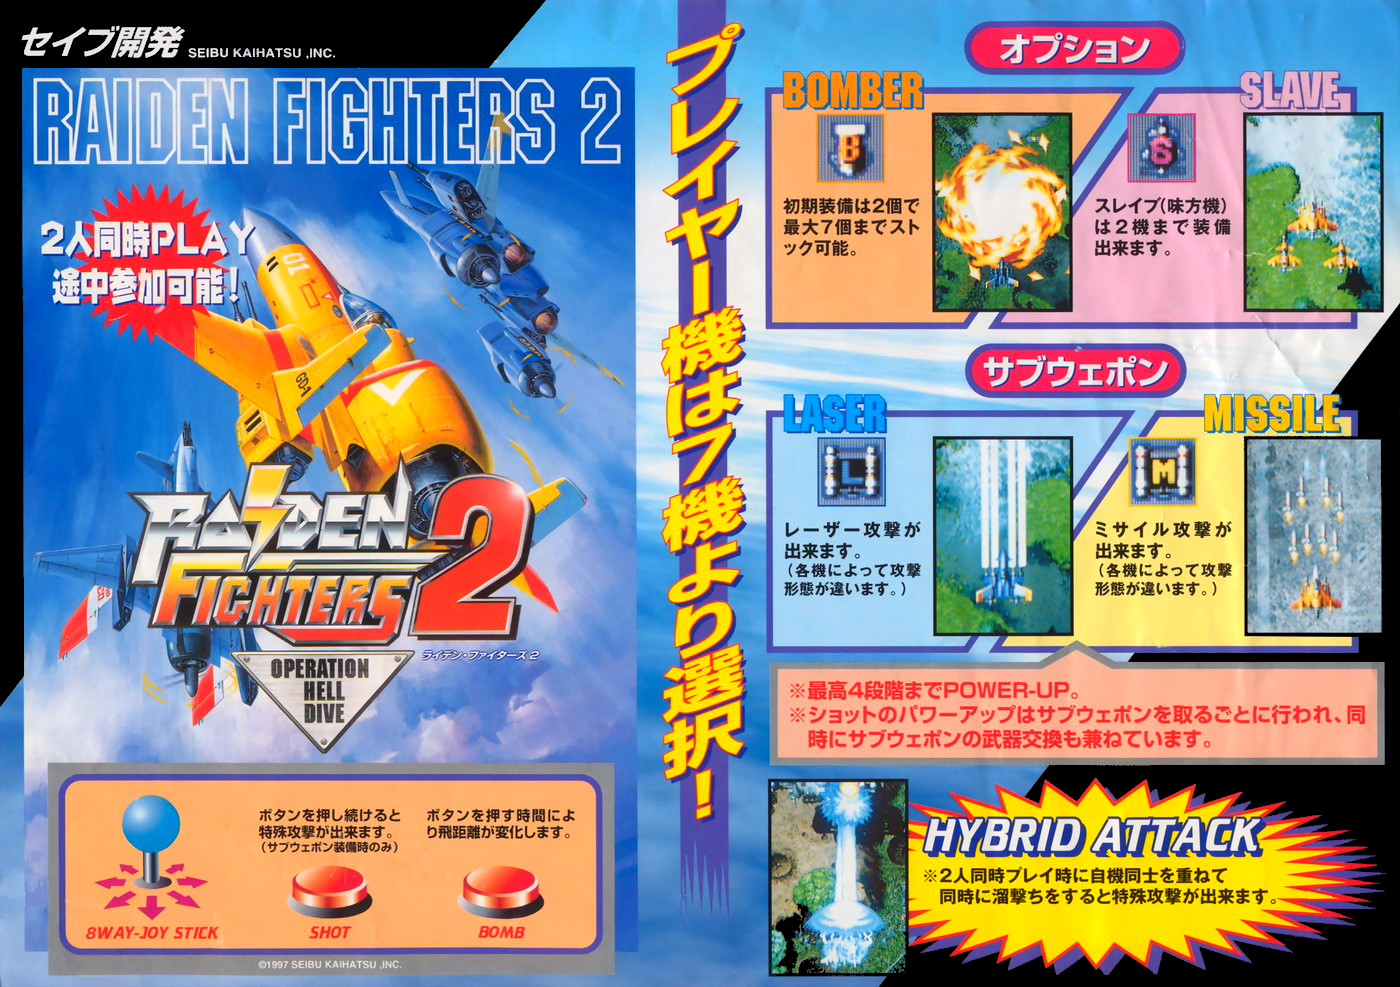 Raiden Fighters 2 - Operation Hell Dive (US, single board) flyer